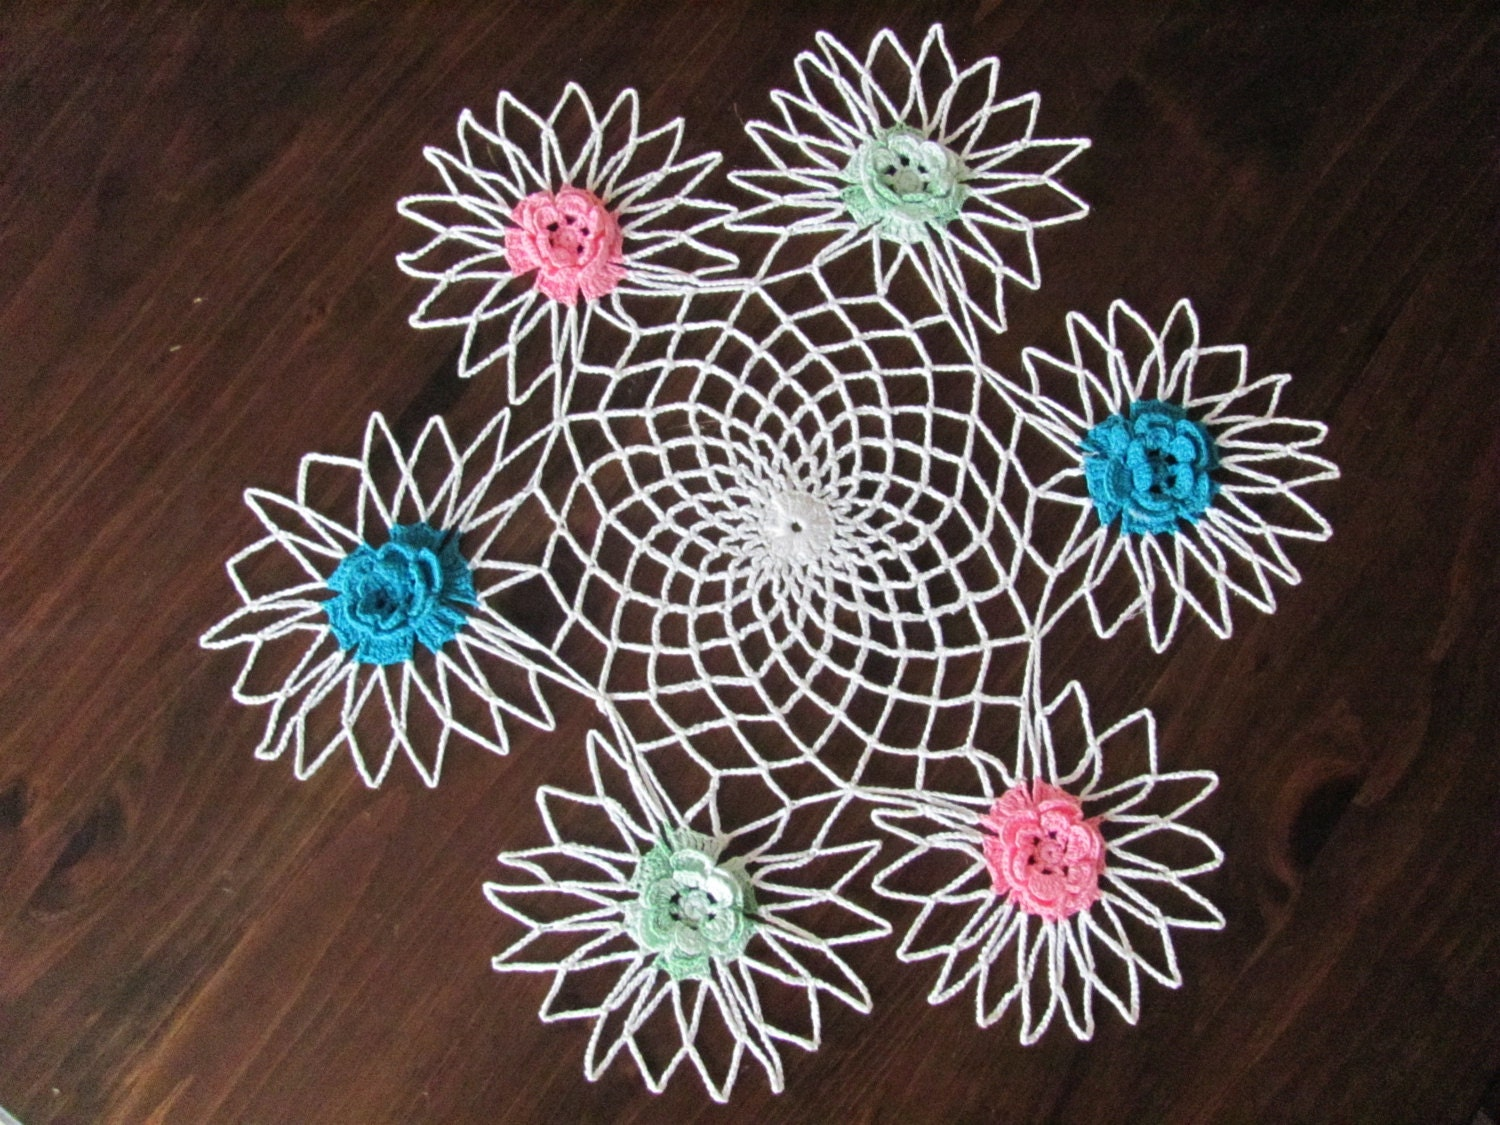 Crocheted floral lace doily centerpiece